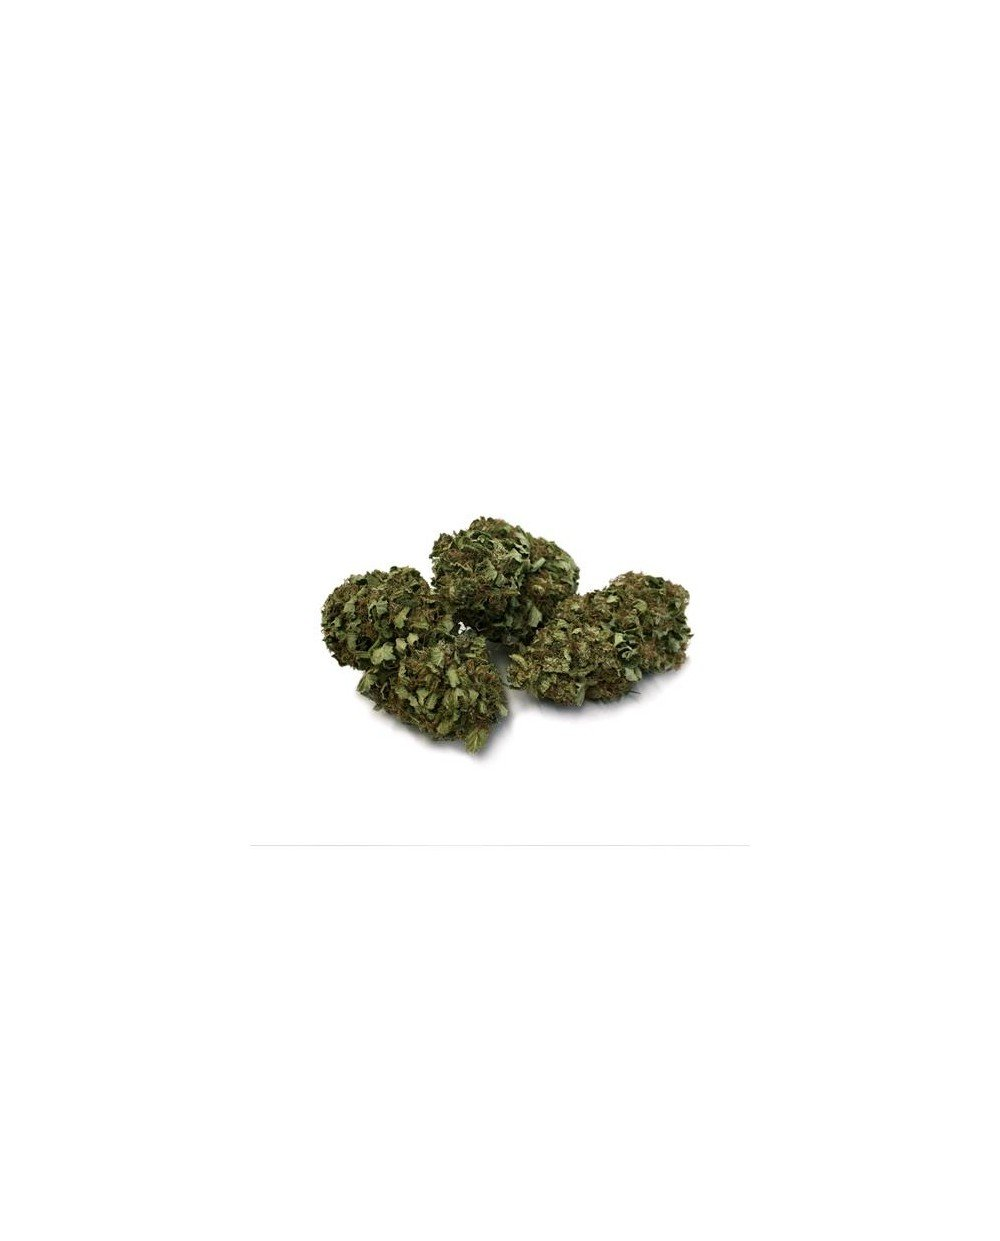 100g Blue Dream Hemp - CBD 9.5% - and Hemp flowers UK